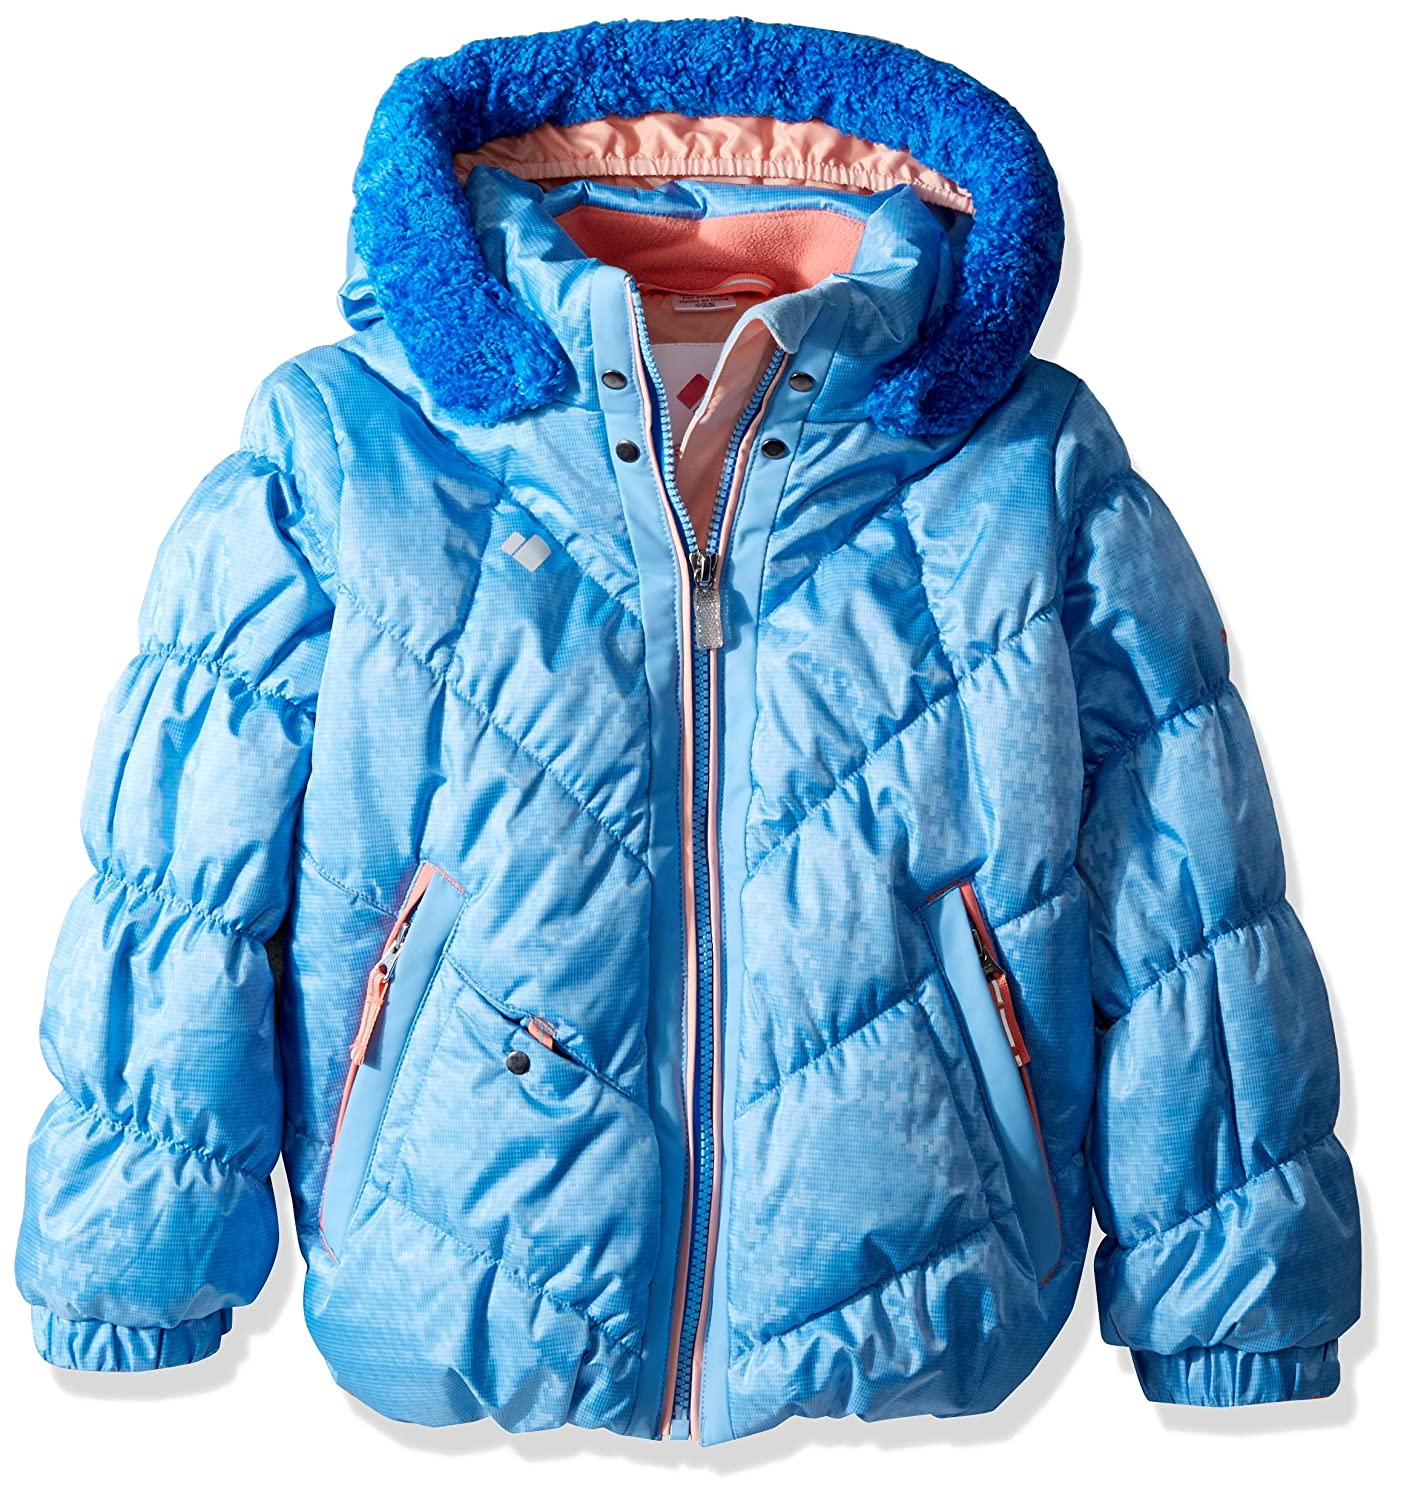 76c49bd9e Amazon.com  Obermeyer 51041 Kid s Twist Jacket  Clothing